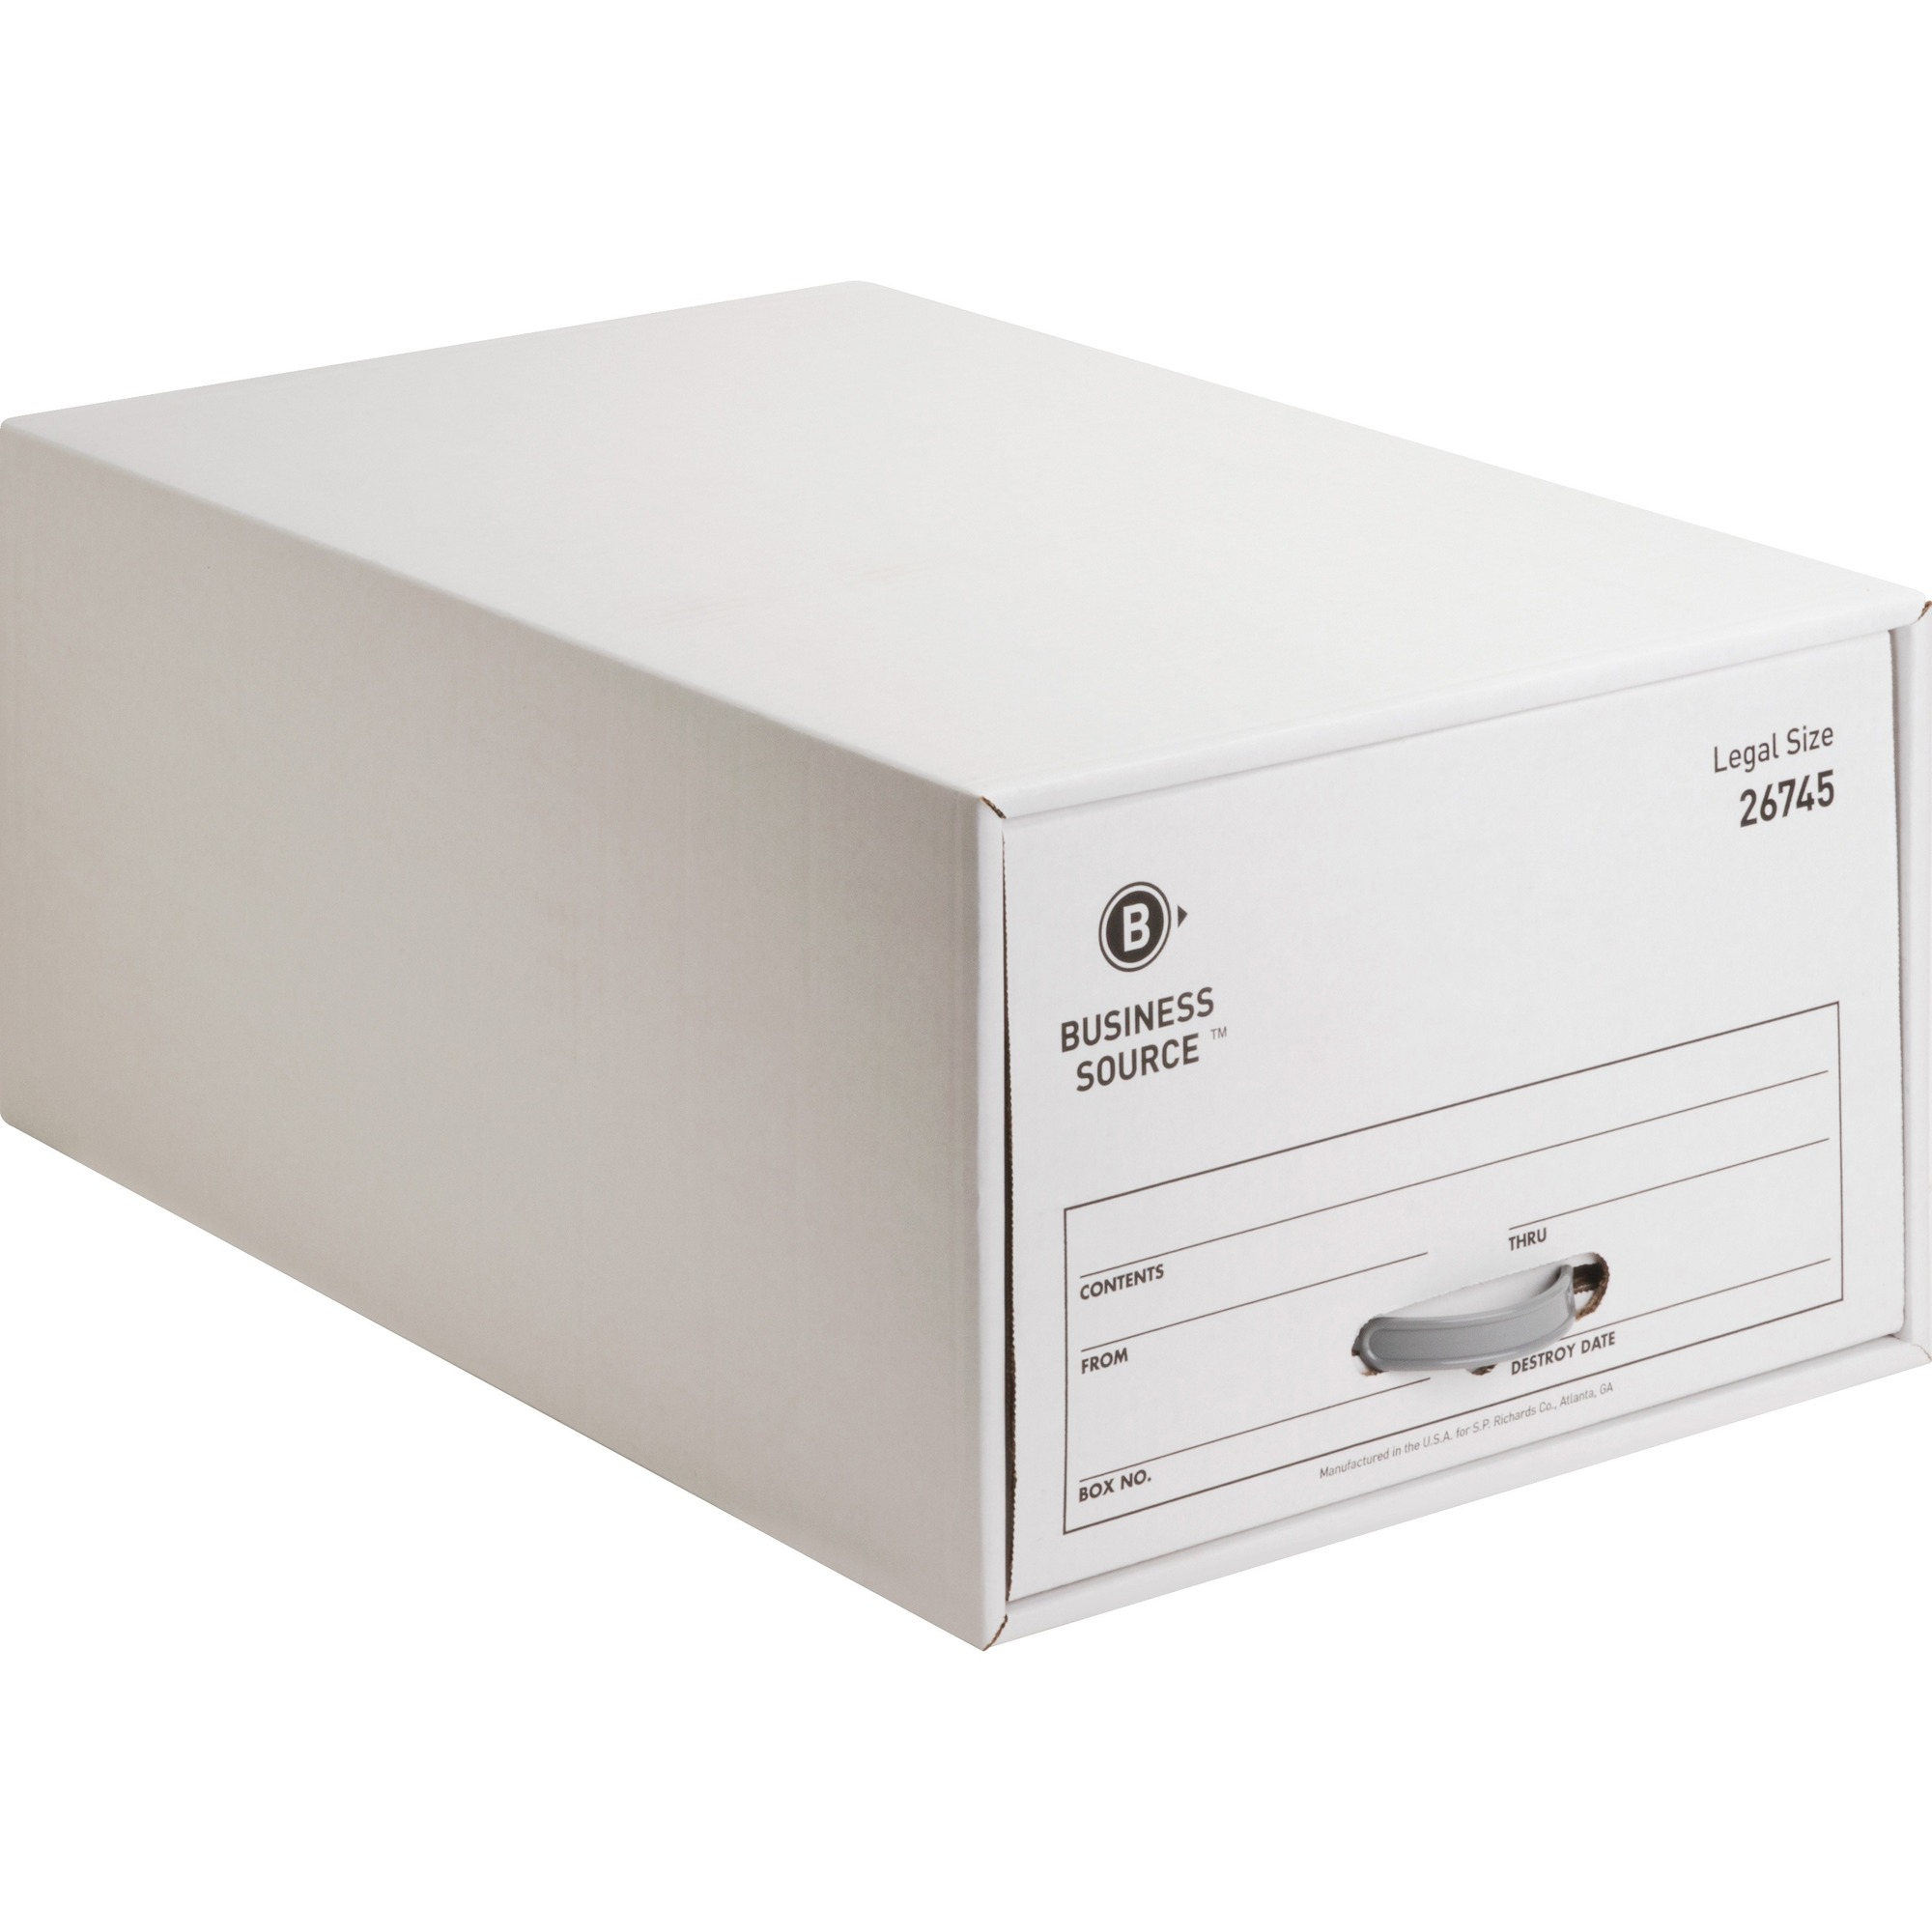 Business Source Stackable File Drawer - Internal Dimensions